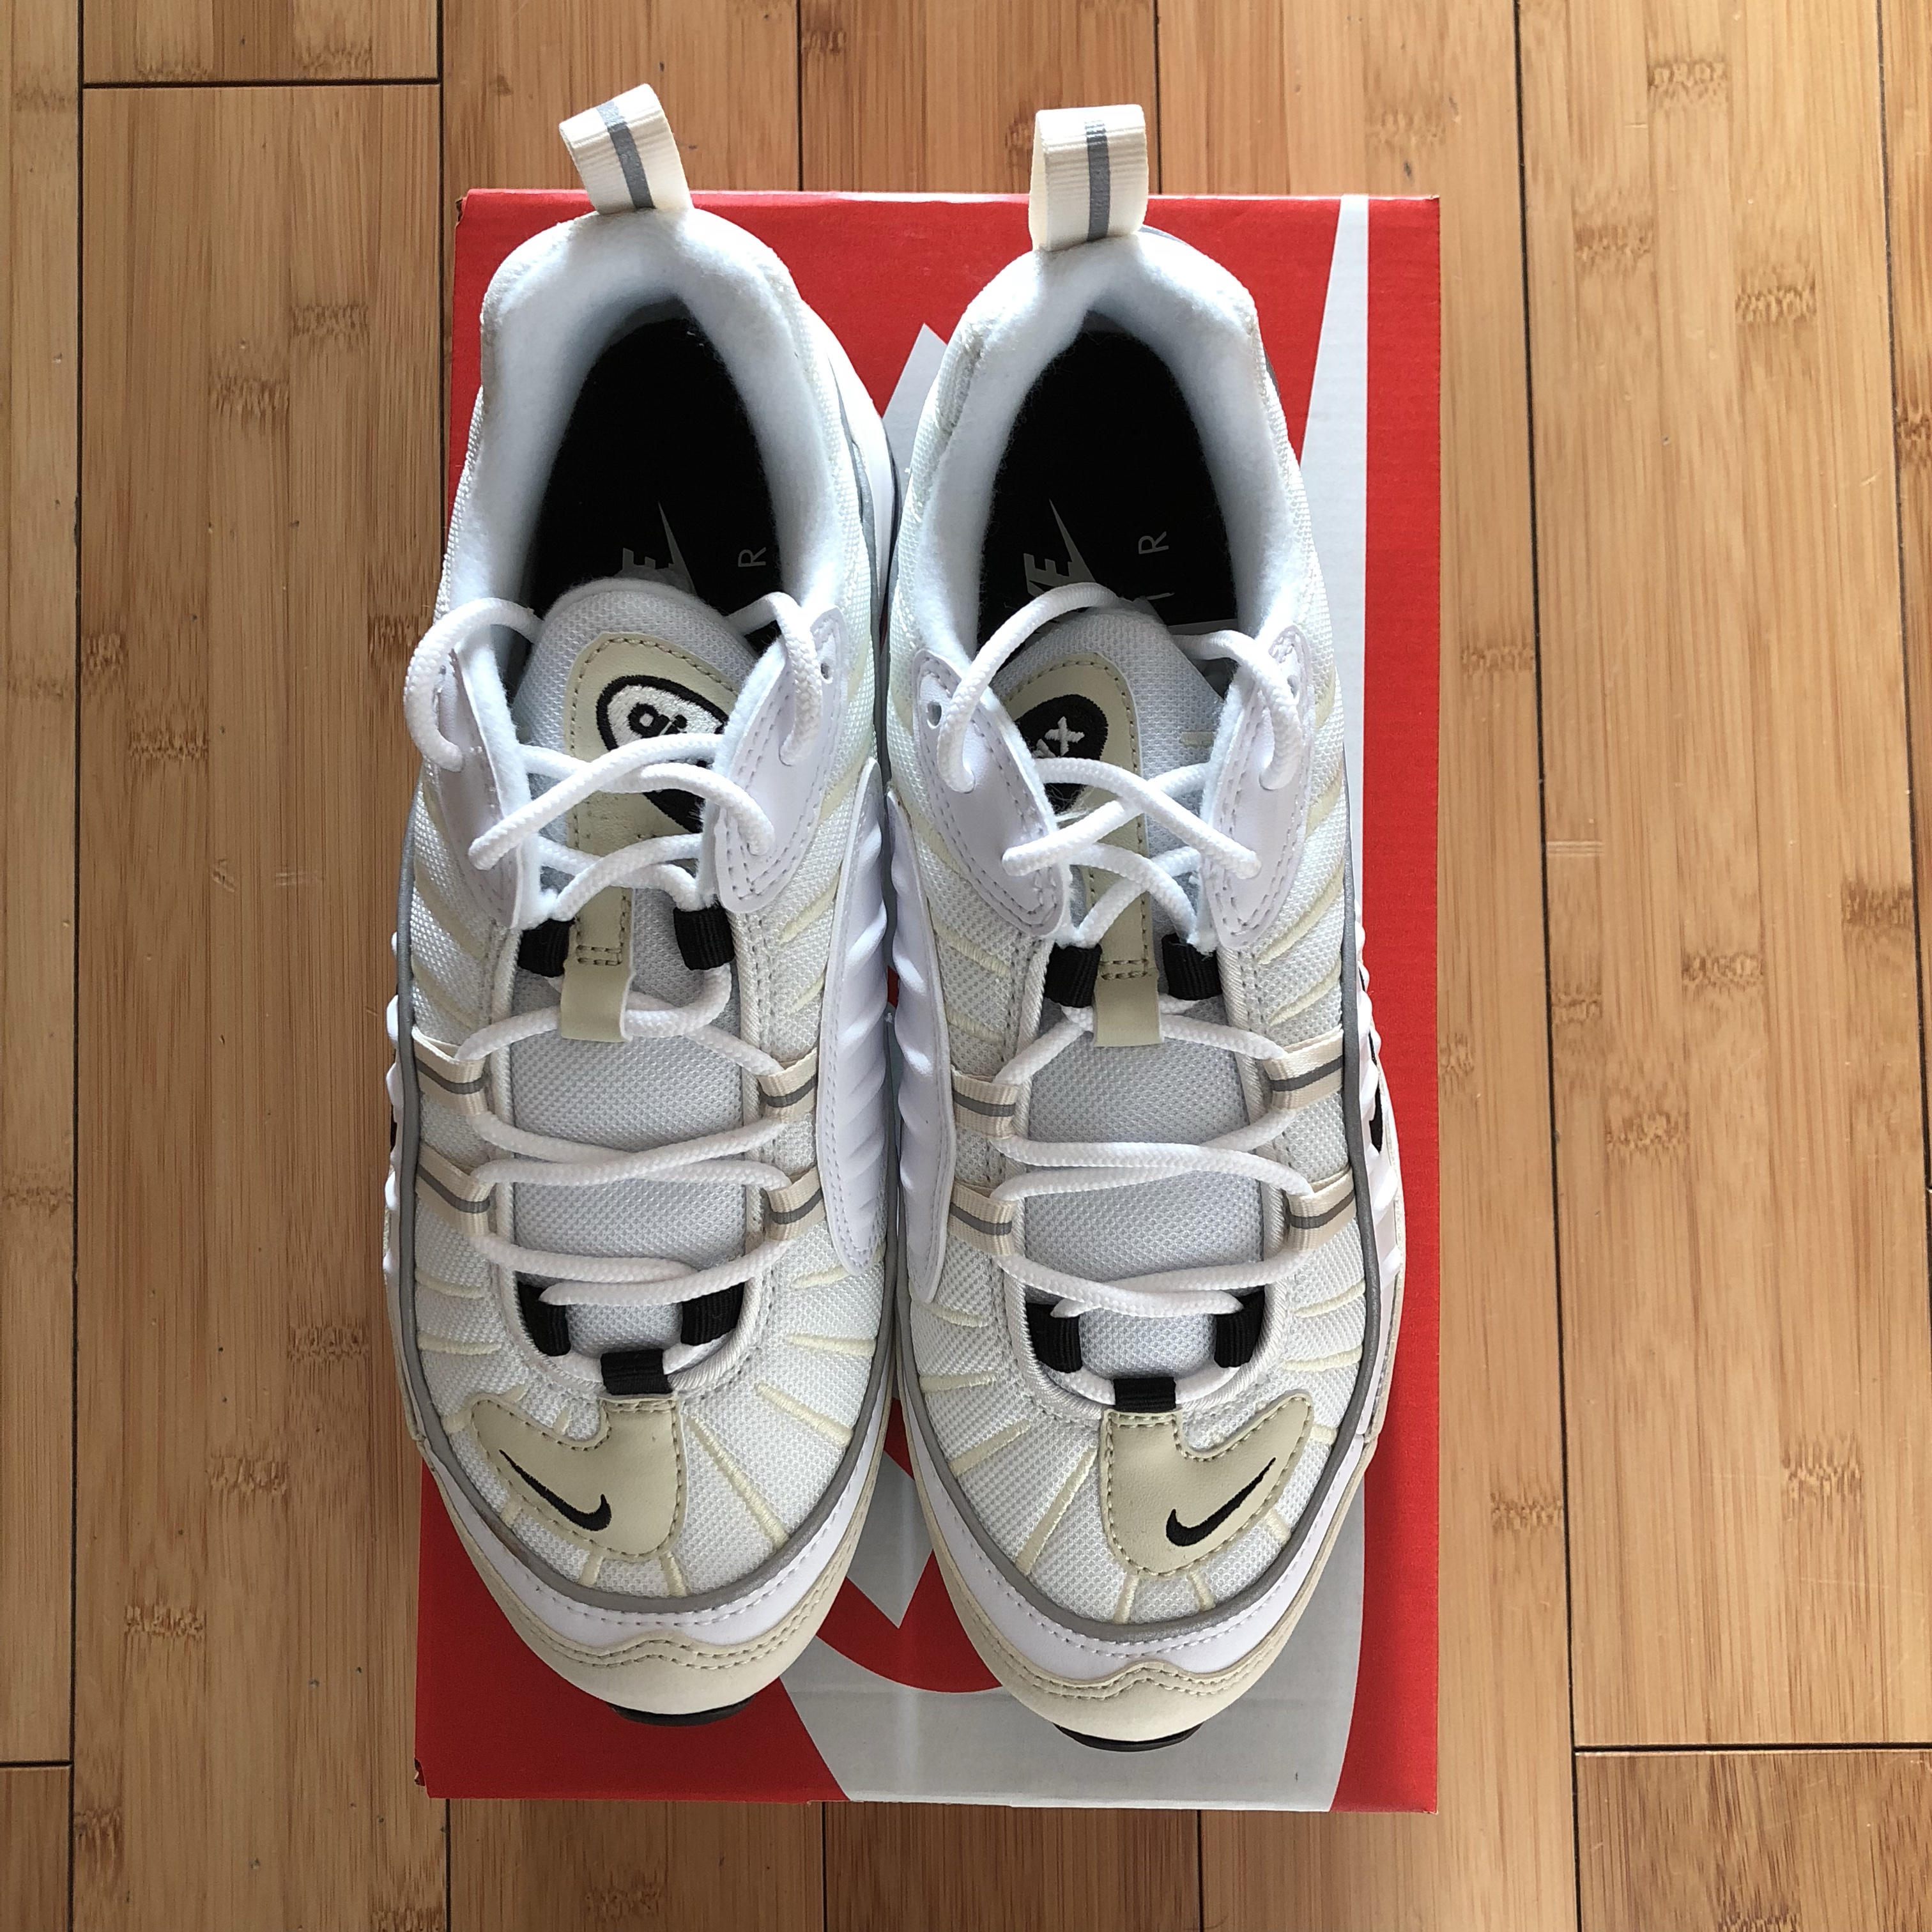 NIKE AIR MAX 98 FOSSIL • white colourway with black